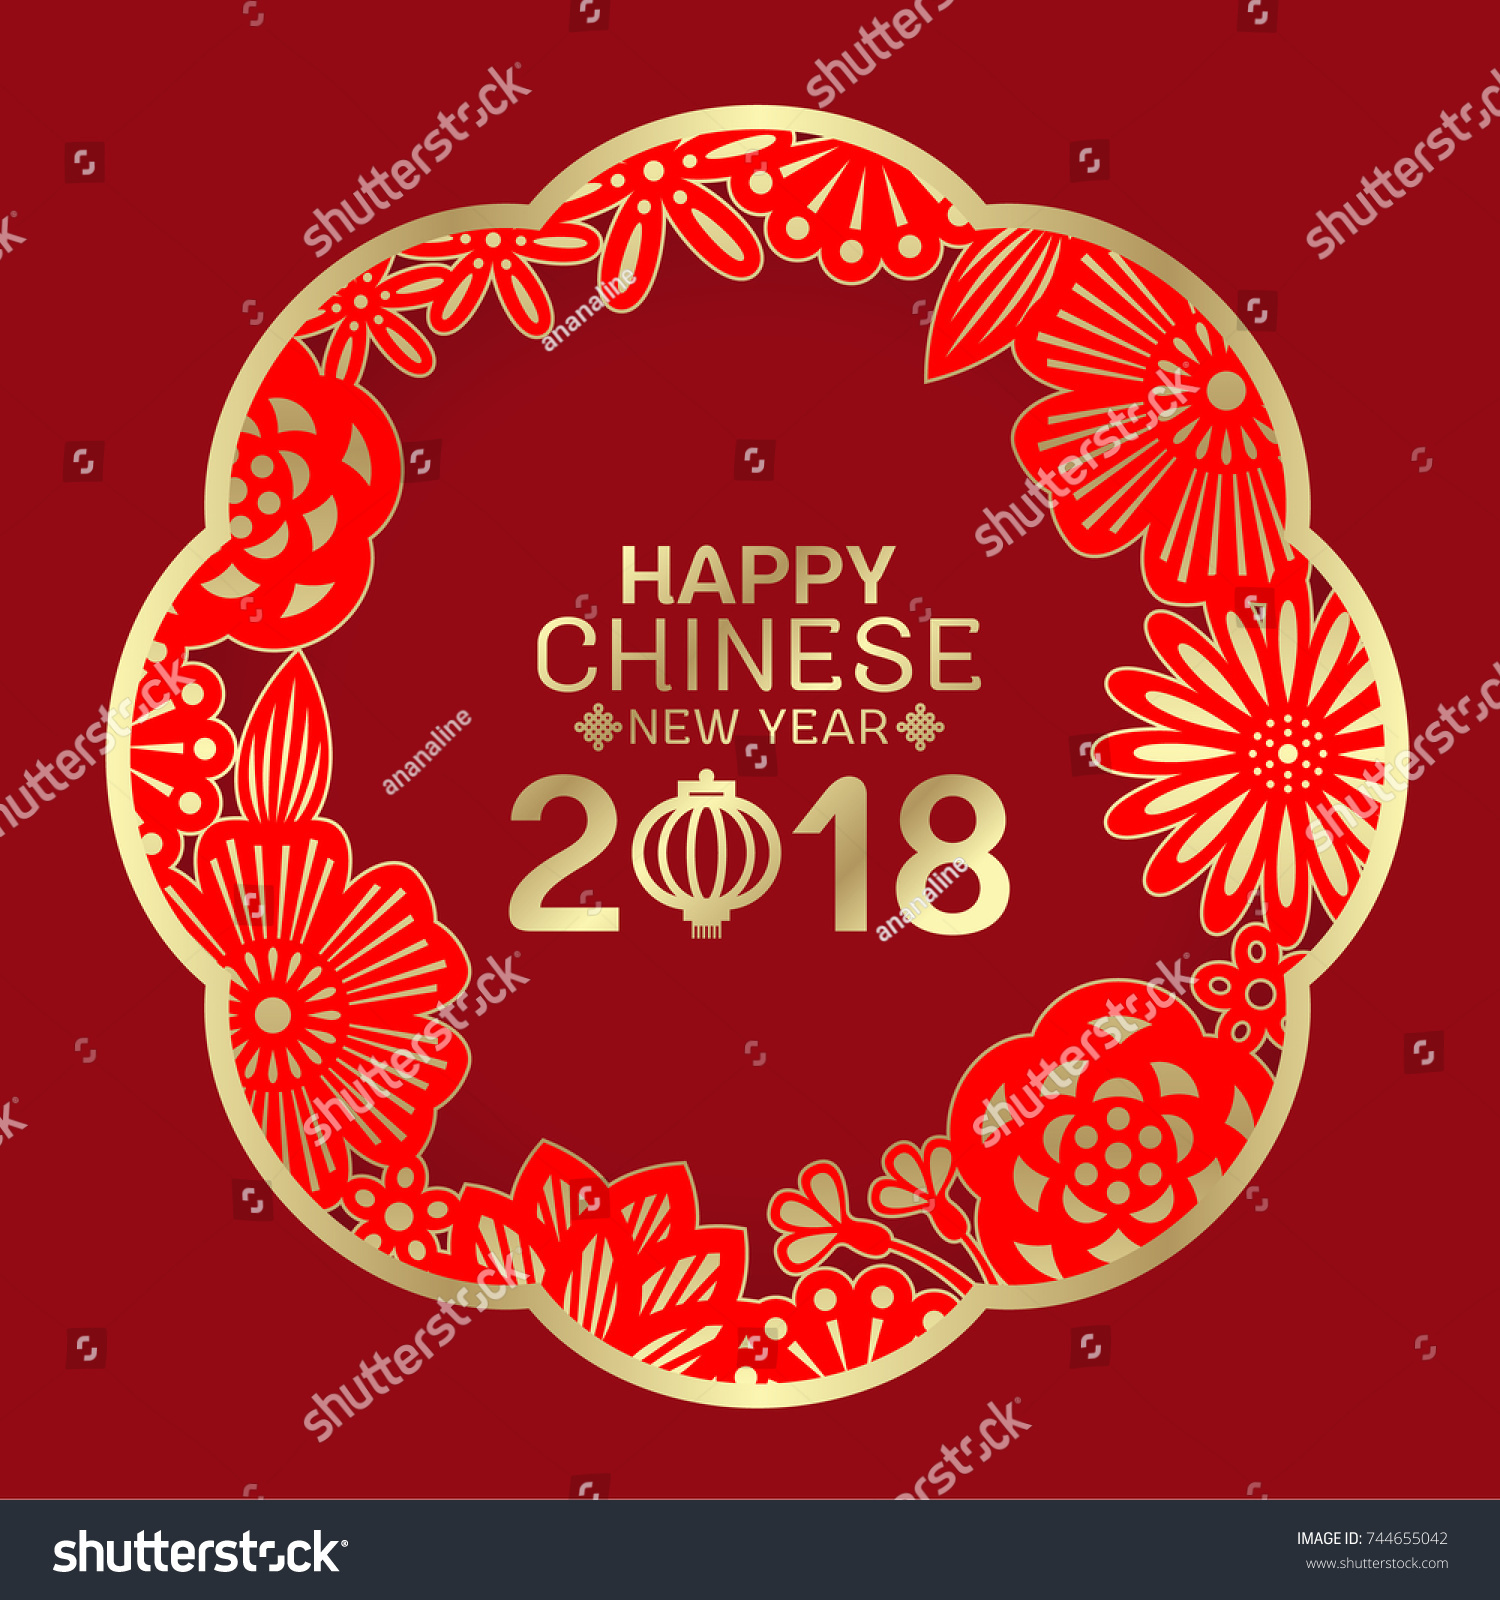 happy chinese new year 2018 lantern stock vector 2018 744655042